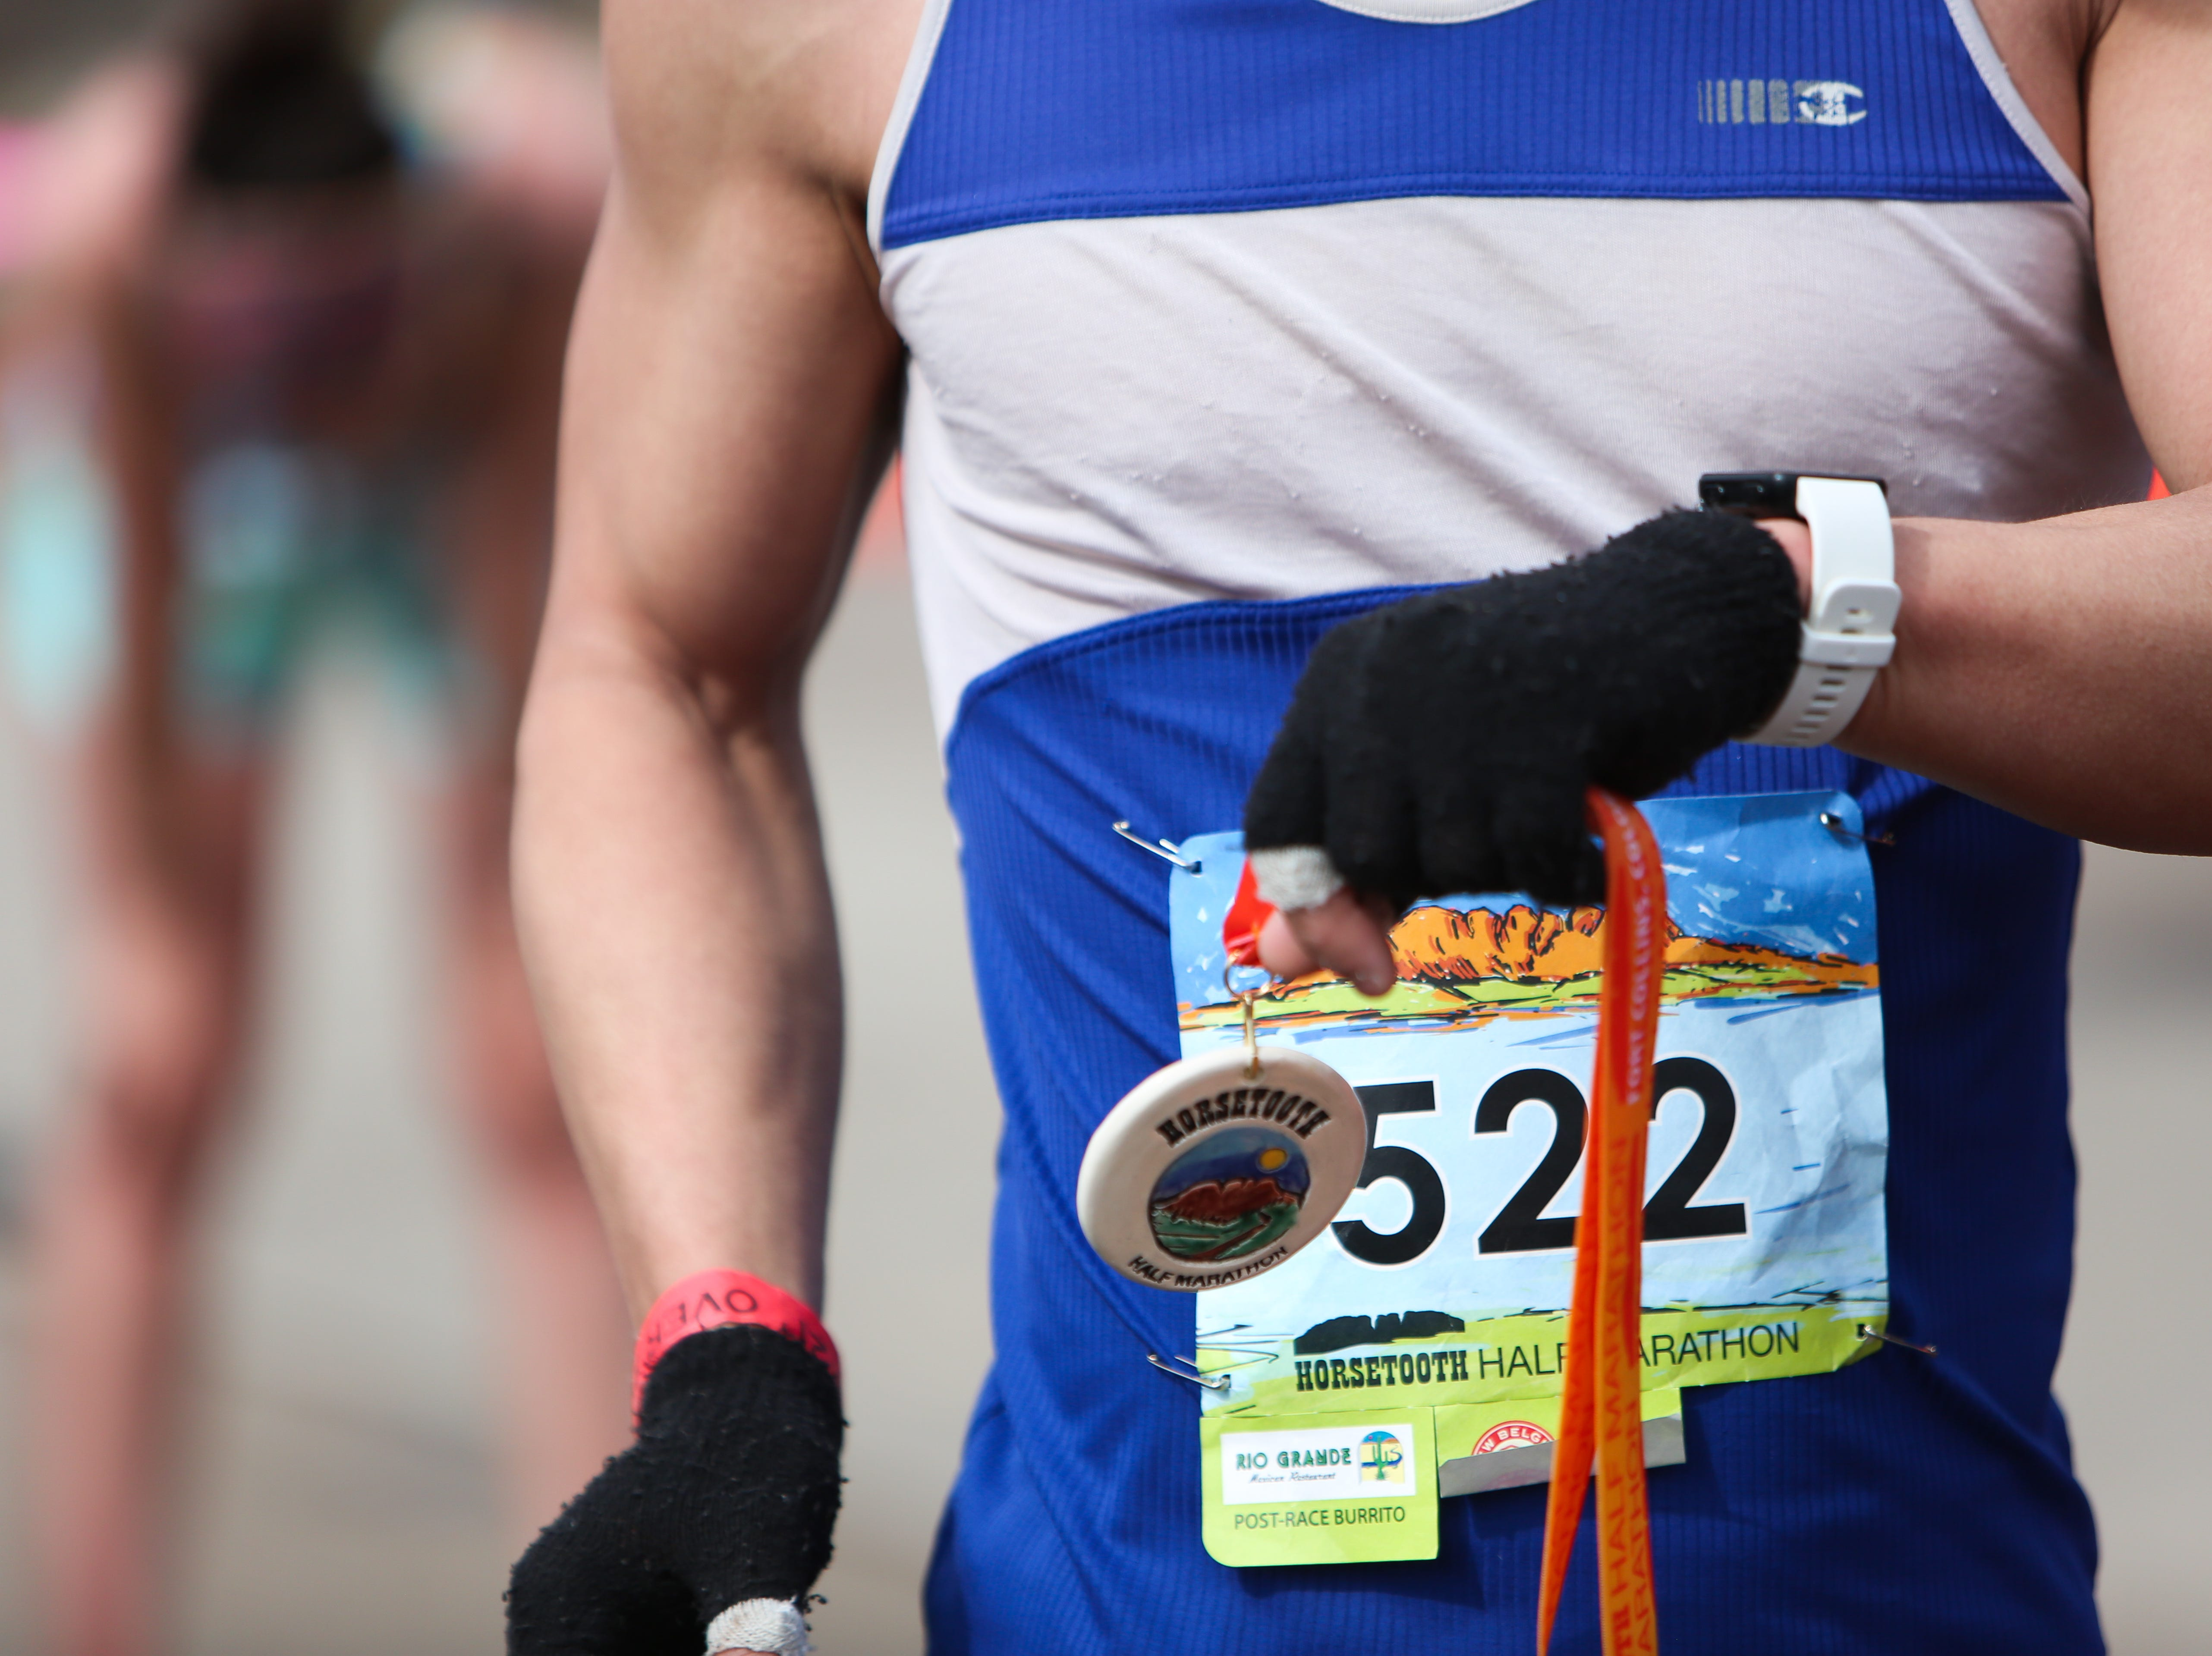 Felix Wong holds his medal and checks his time after completing the half marathon on April 14.